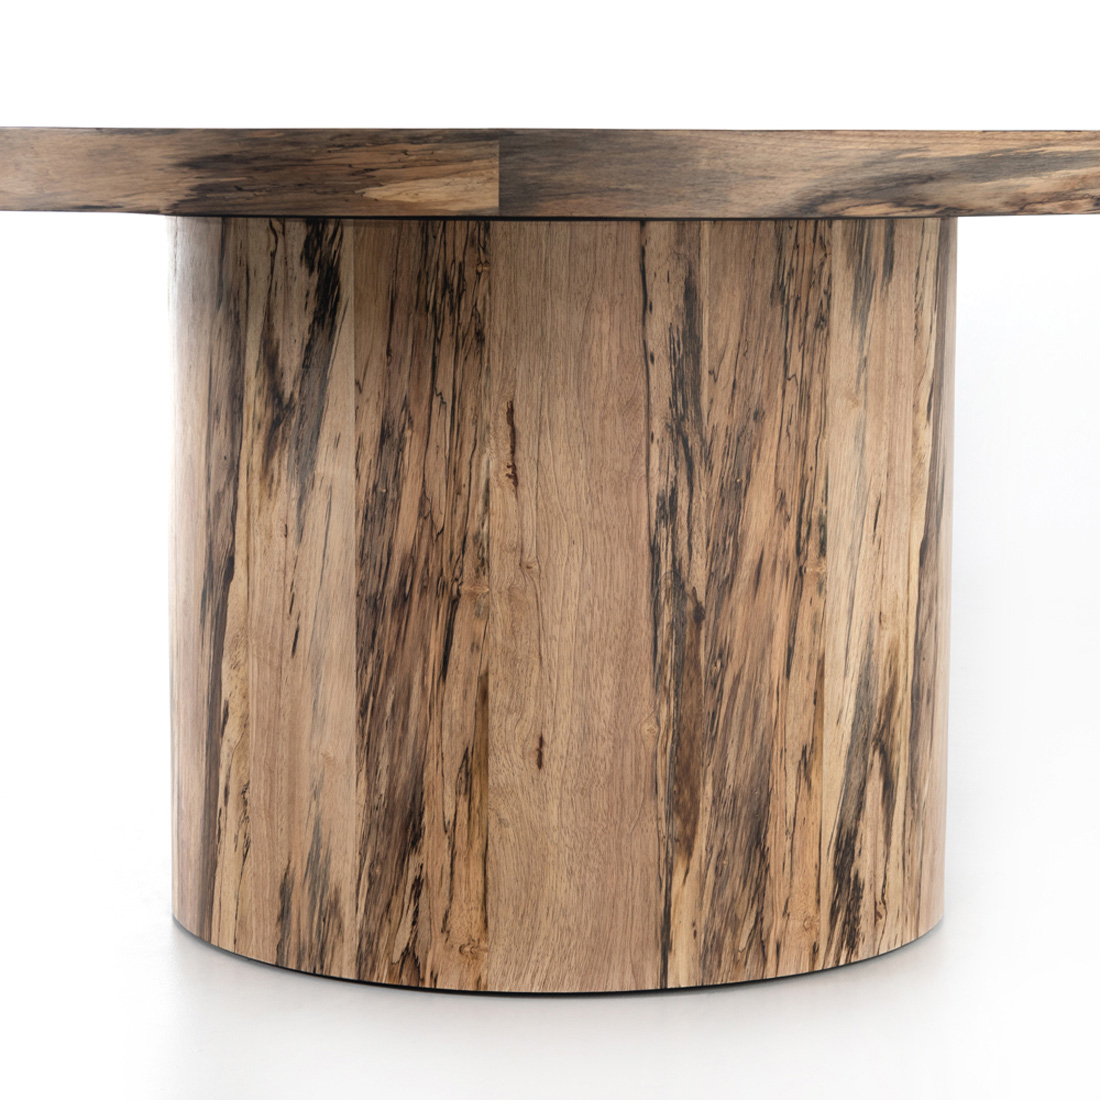 Chase Rustic Lodge Brown Primavera Wood Round Pedestal Classic Dining Table